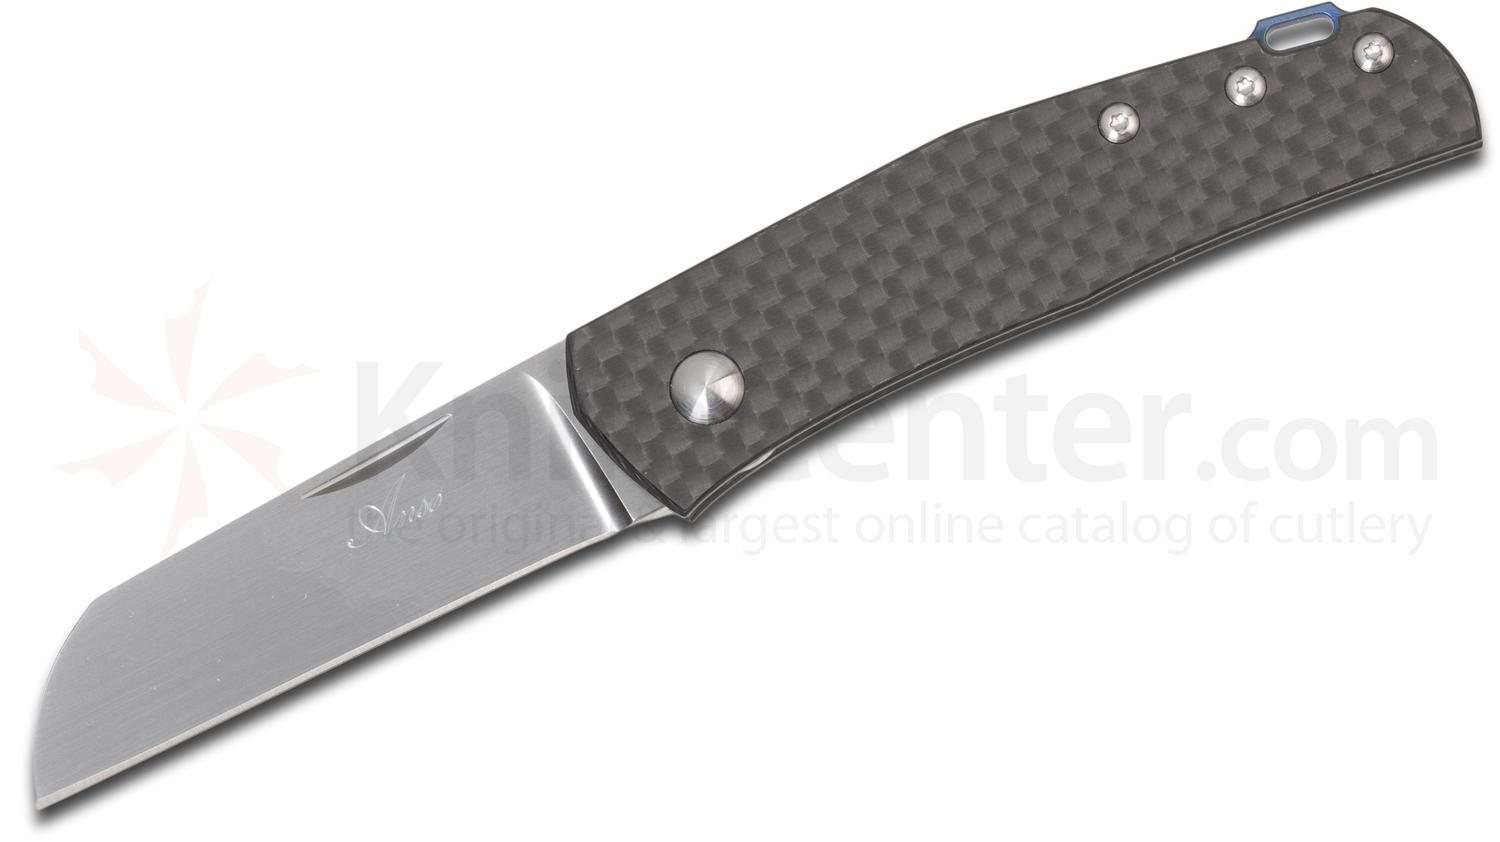 Jens Anso Custom Monte Carlo Slipjoint Folder 2.625 inch RWL-34 Hand-Rubbed Satin Blade, Carbon Fiber Handles